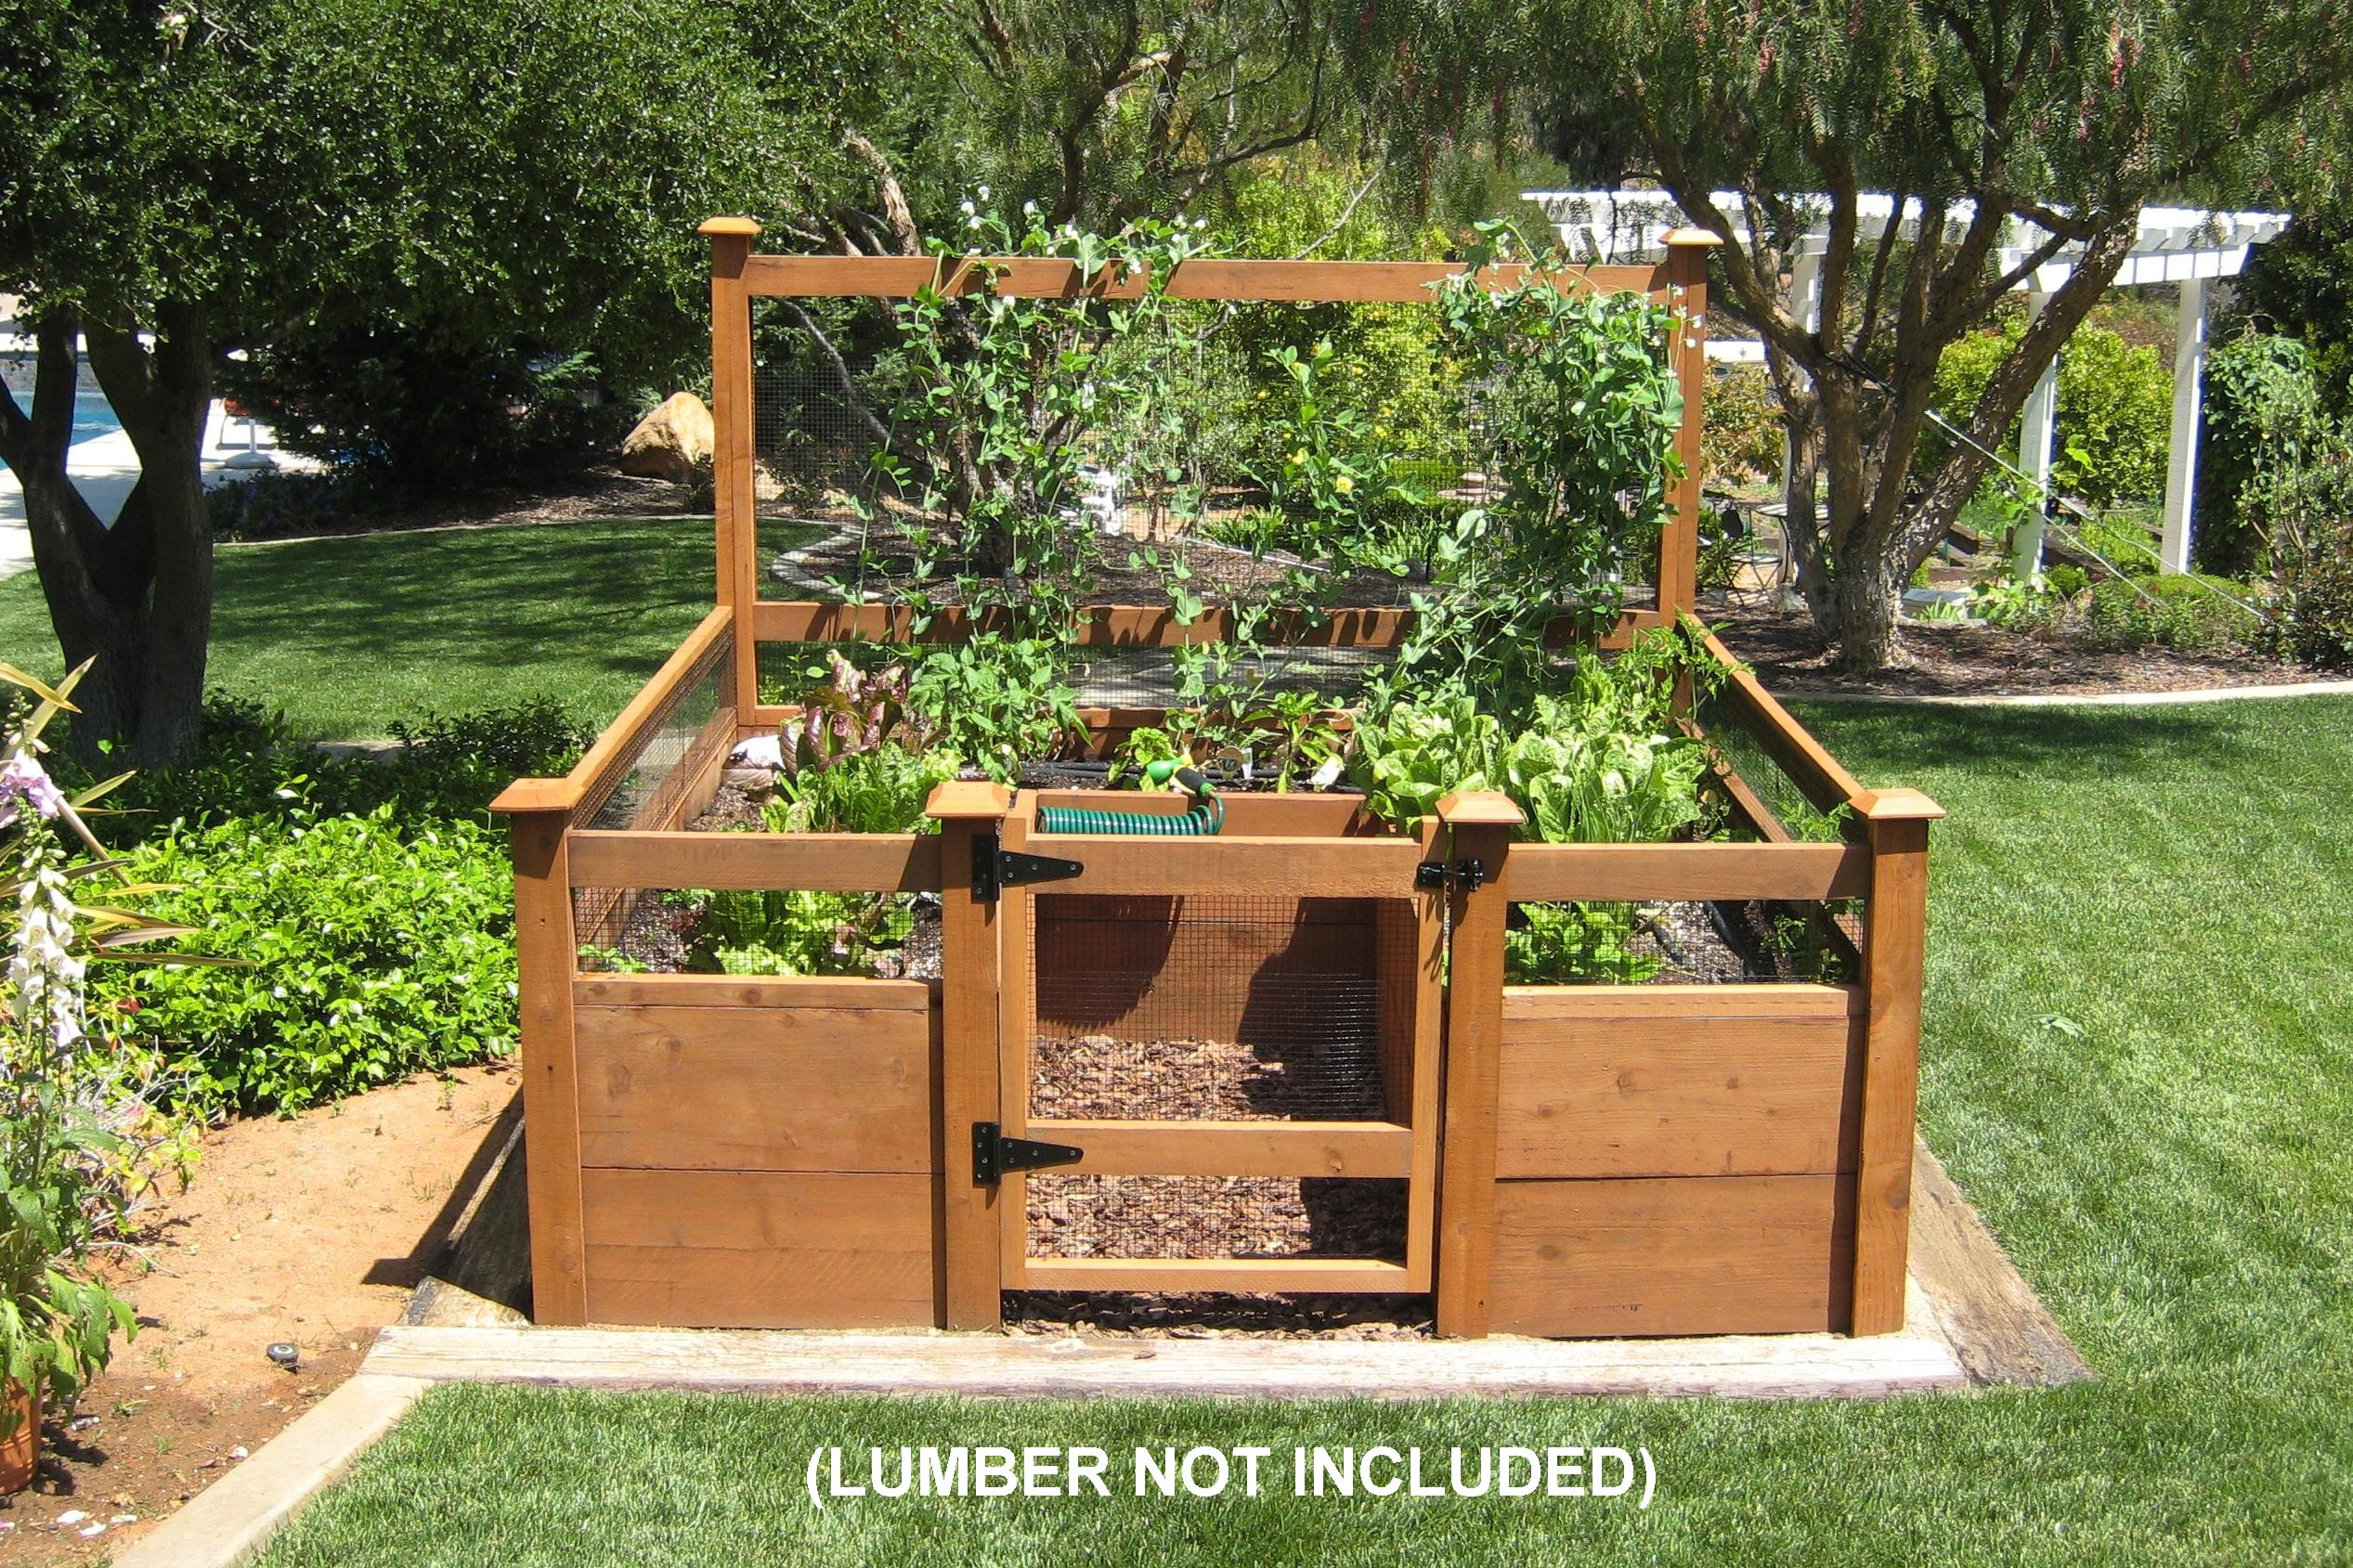 Just Add Lumber Vegetable Garden Kit - 8'x8' Deluxe